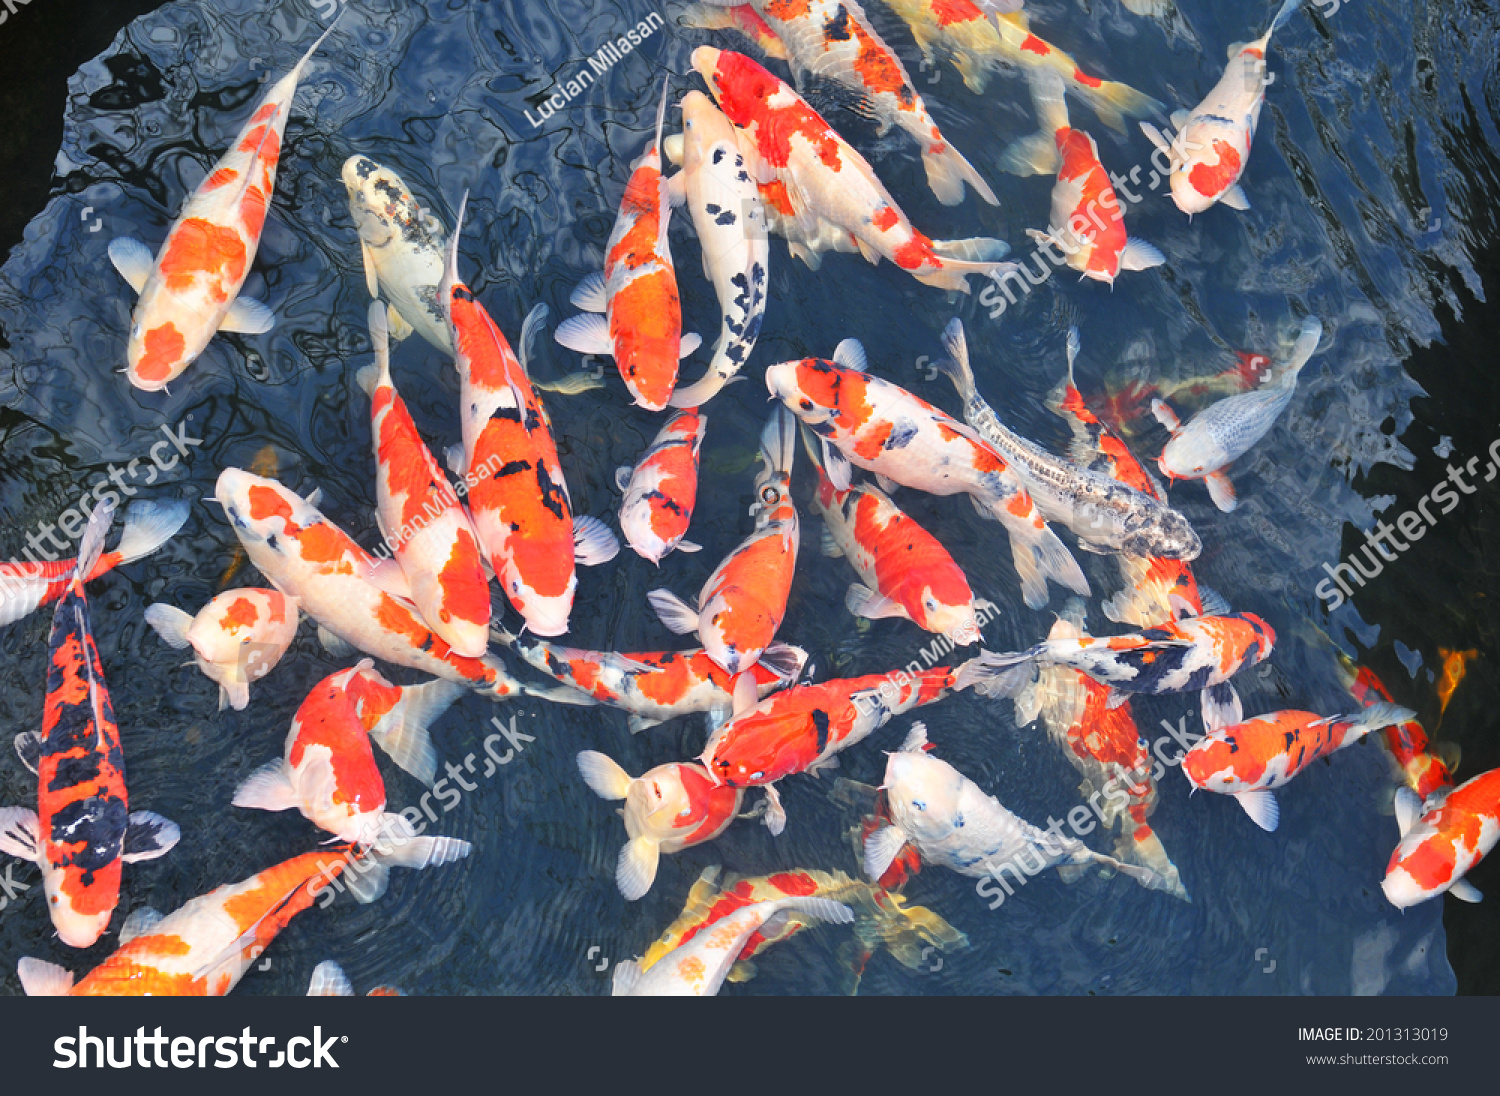 Detail colorful koi fish pond stock photo 201313019 for Colorful pond fish